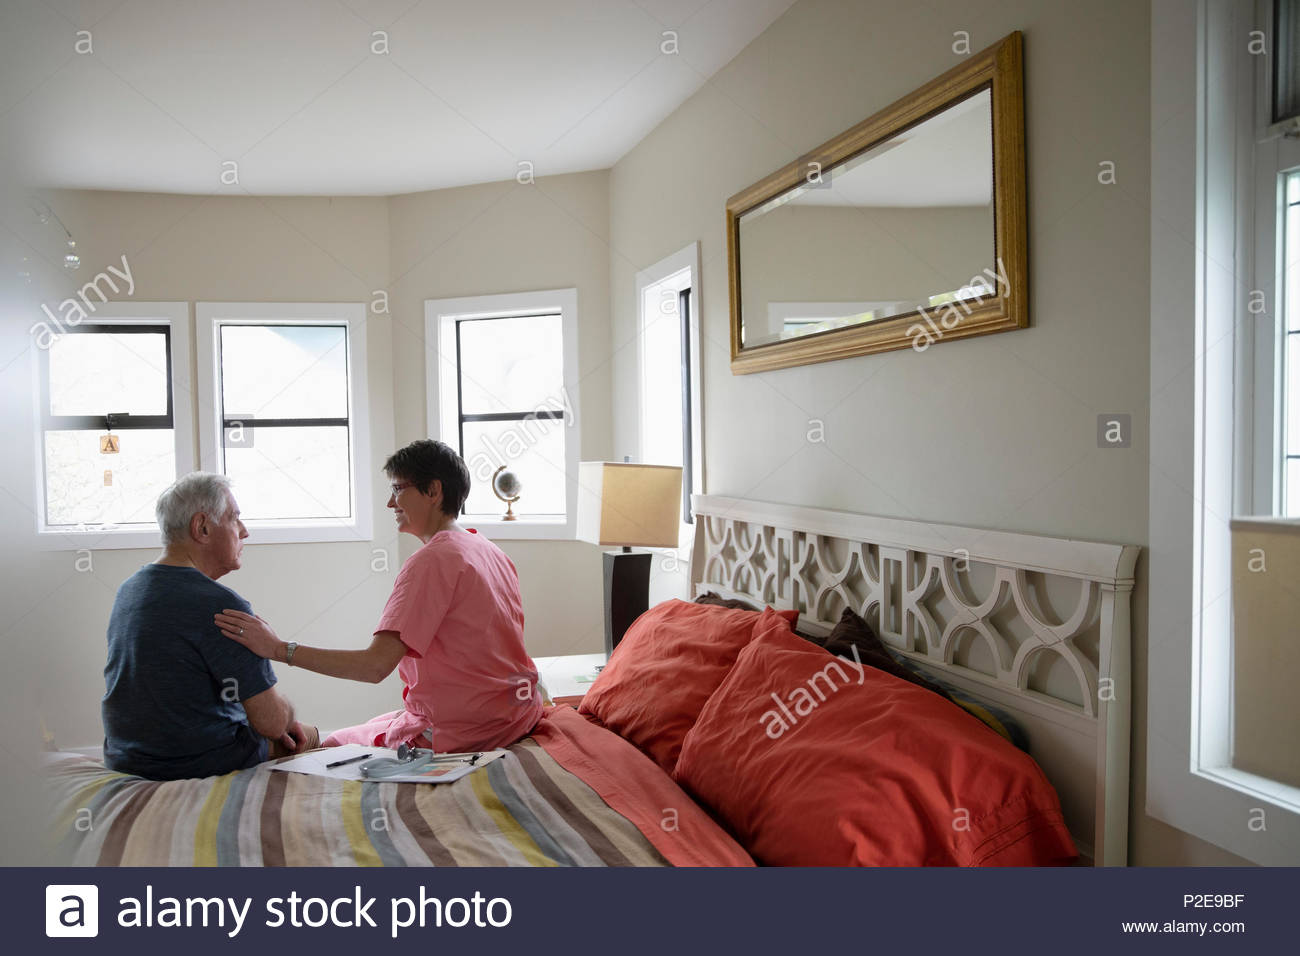 Home caregiver comforting senior man in bedroom - Stock Image